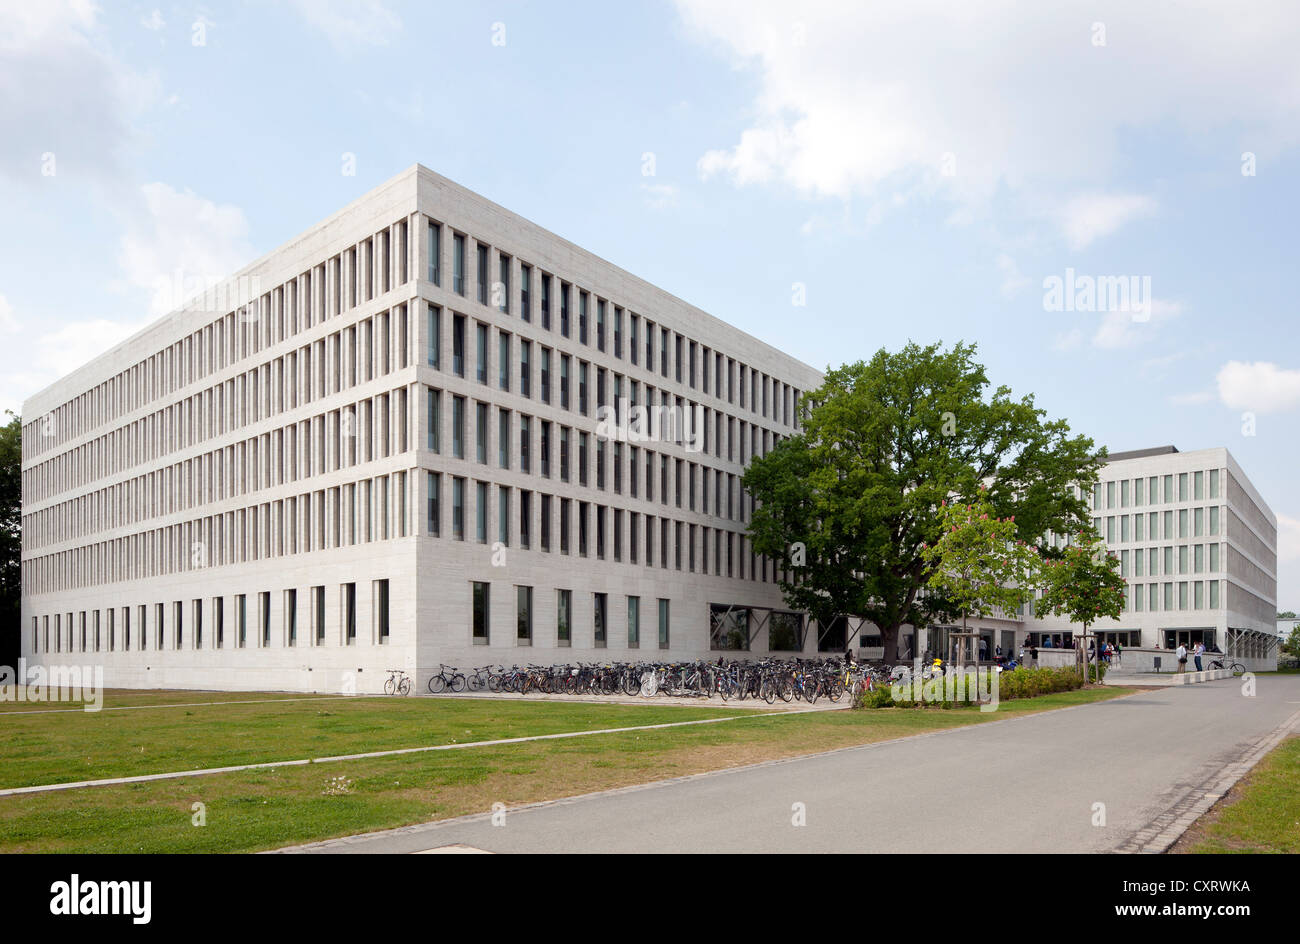 Faculty of Law and Economics building of the Johann Wolfgang Goethe University of Frankfurt, Westend Campus, Frankfurt - Stock Image